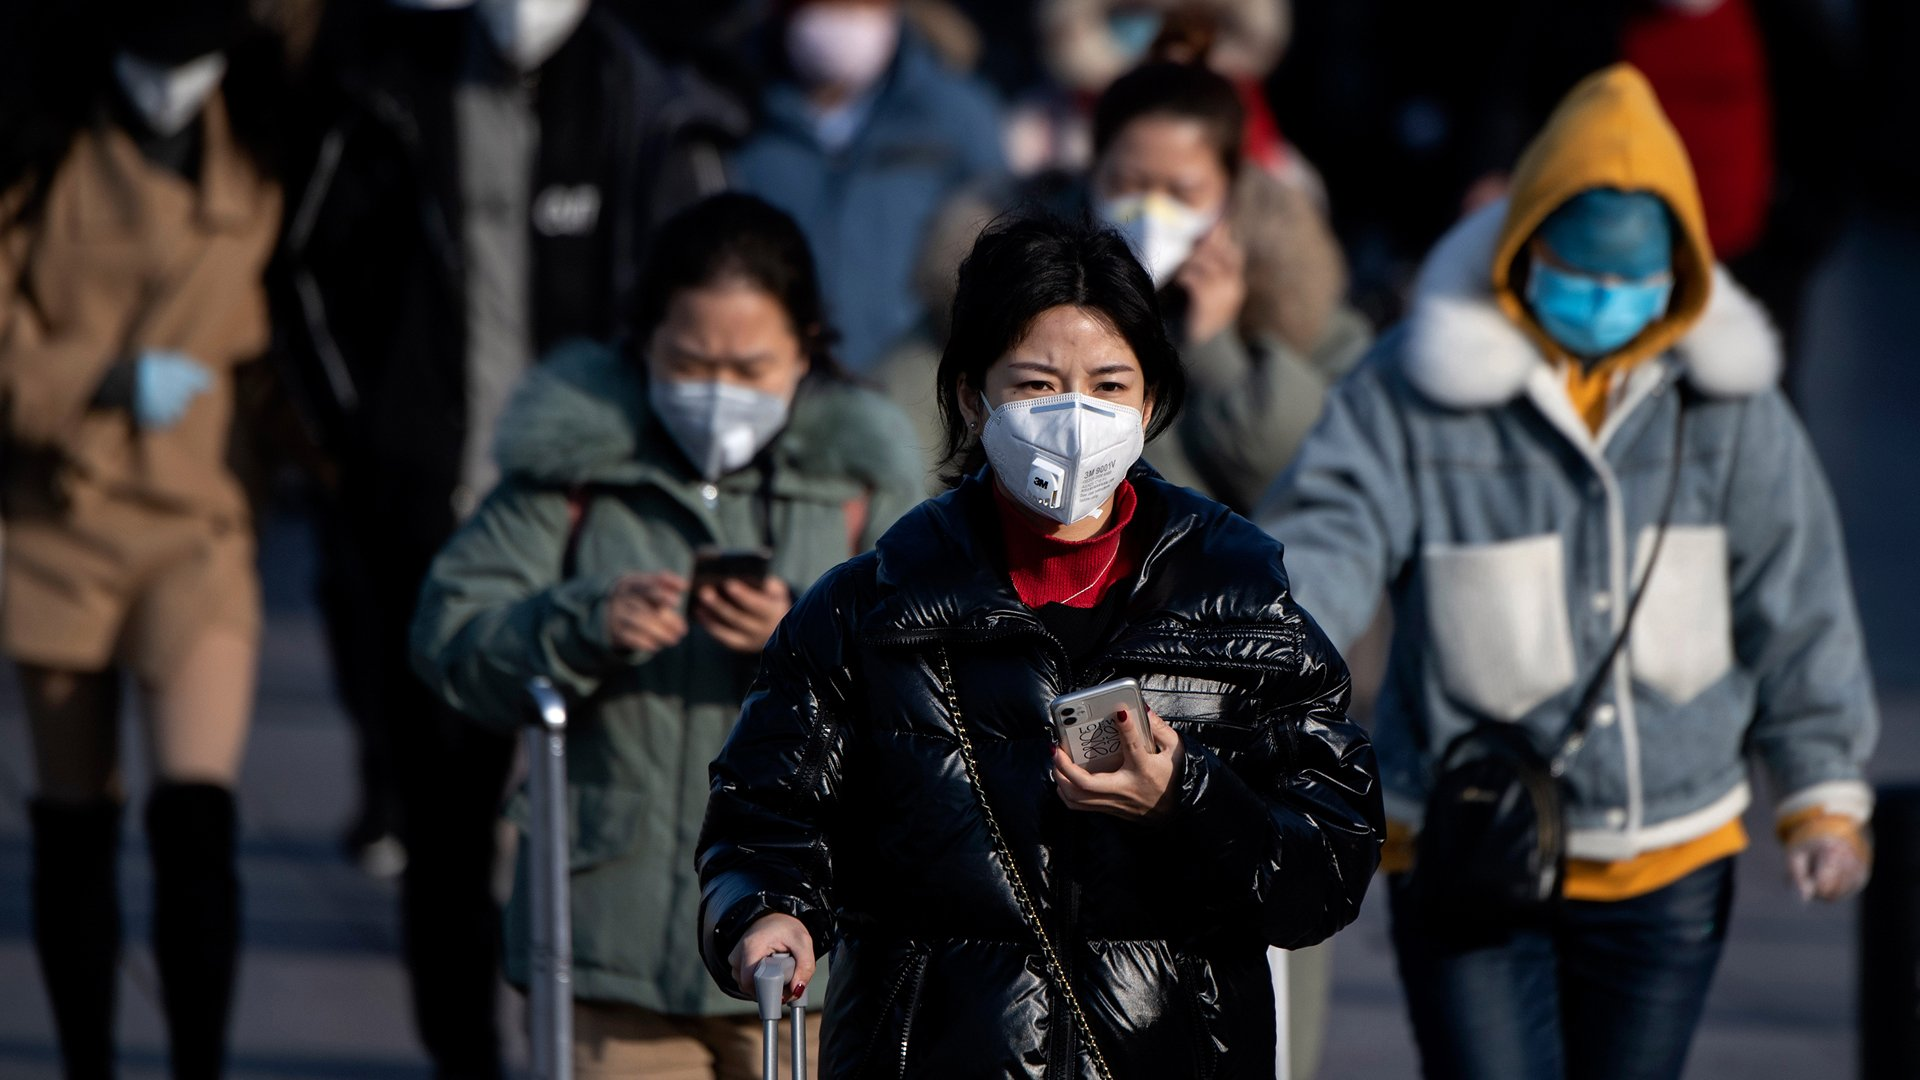 Travelers wearing face masks arrive from various provinces at the Beijing Railway Station on February 3, 2020. (Credit: Noel Celis/AFP/Getty Images)